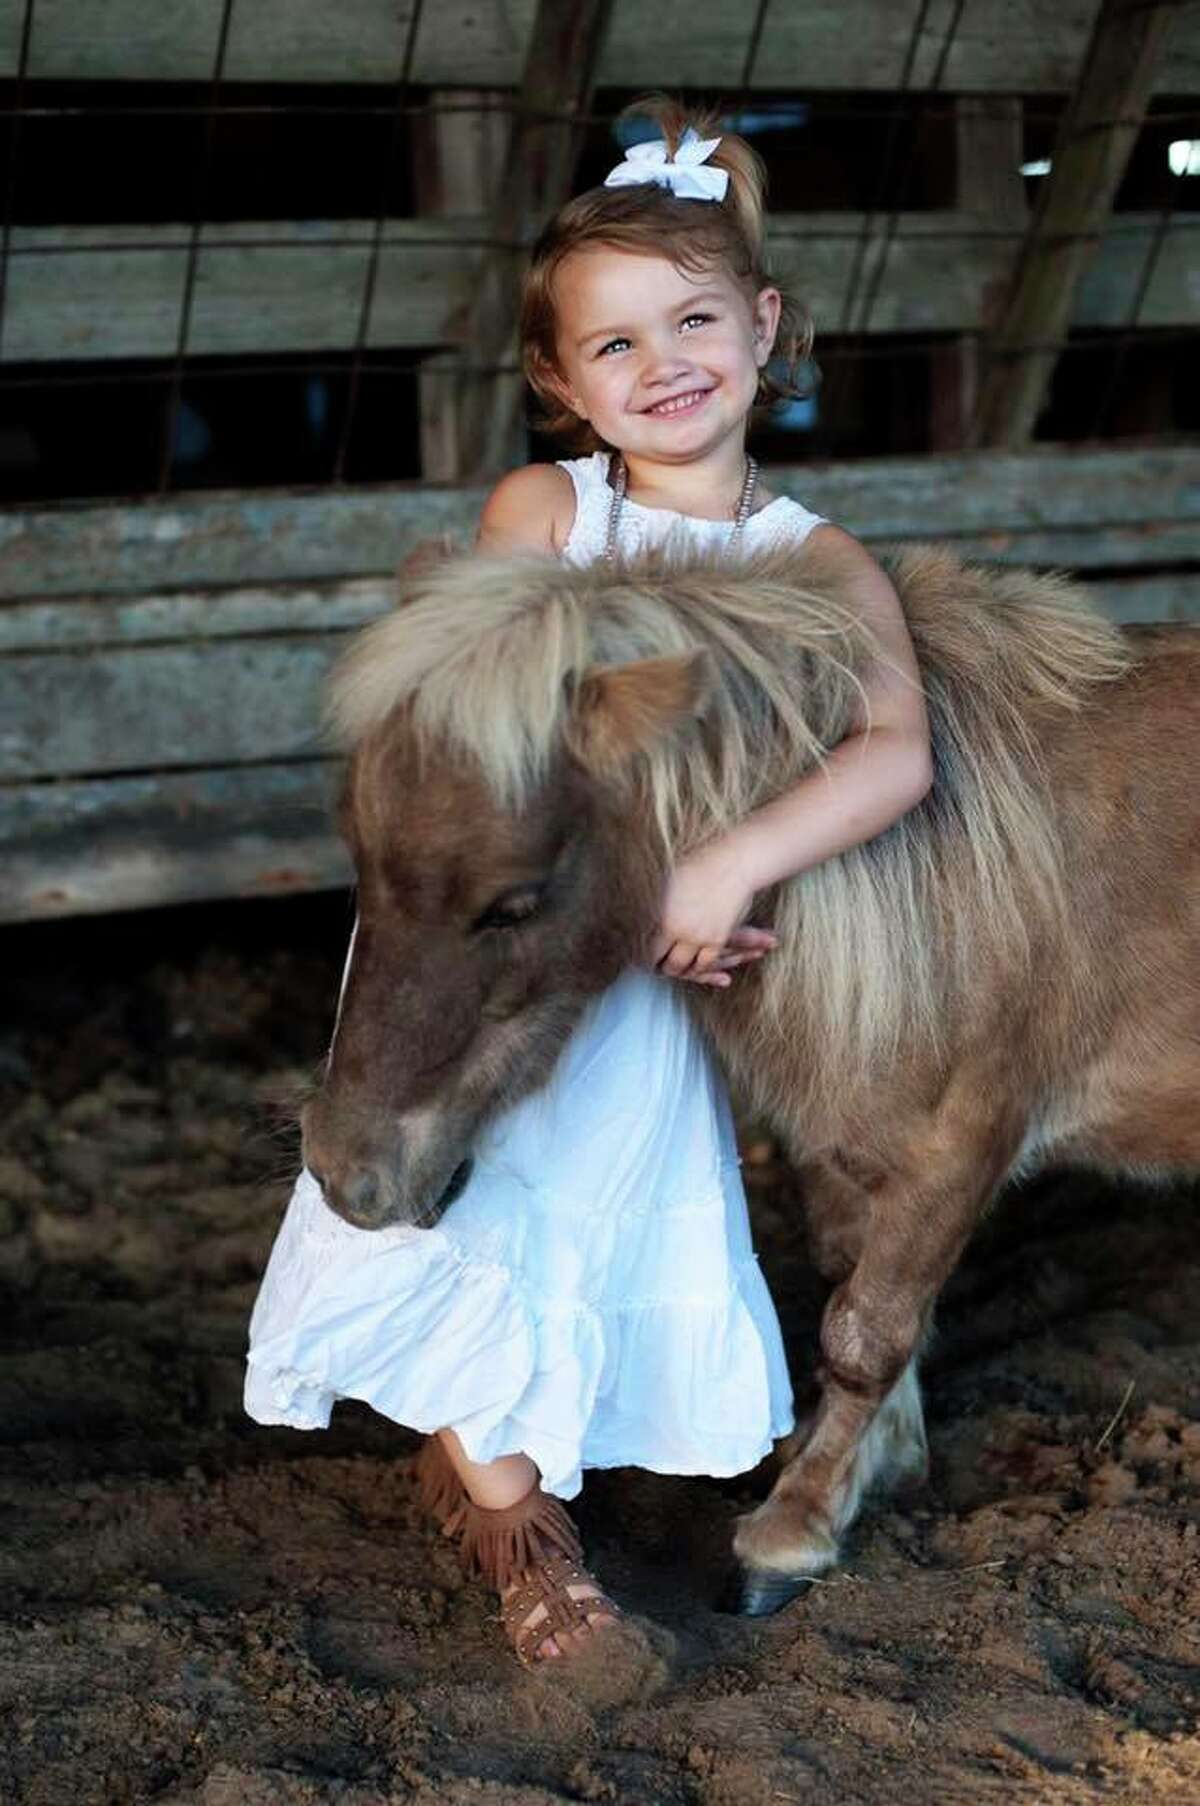 A 5-year-old girl and her family in Liberty County are devastated and seeking justice after the family woke up to find their pet pony, Chicken Nugget, shot to death in his pen on Wednesday, Nov. 8.